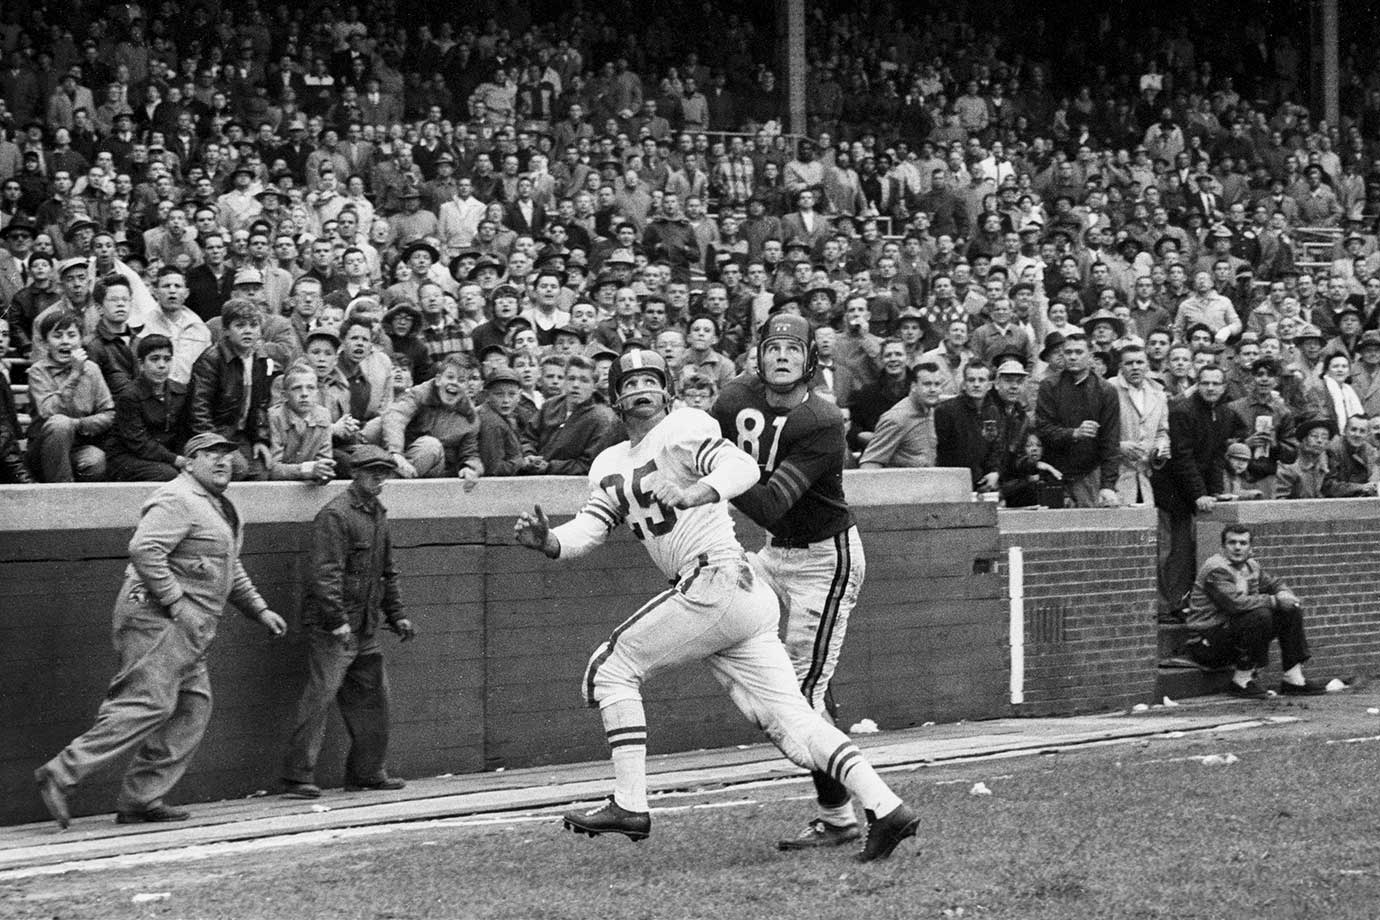 Oct. 4, 1955 — Baltimore Colts vs. Chicago Bears